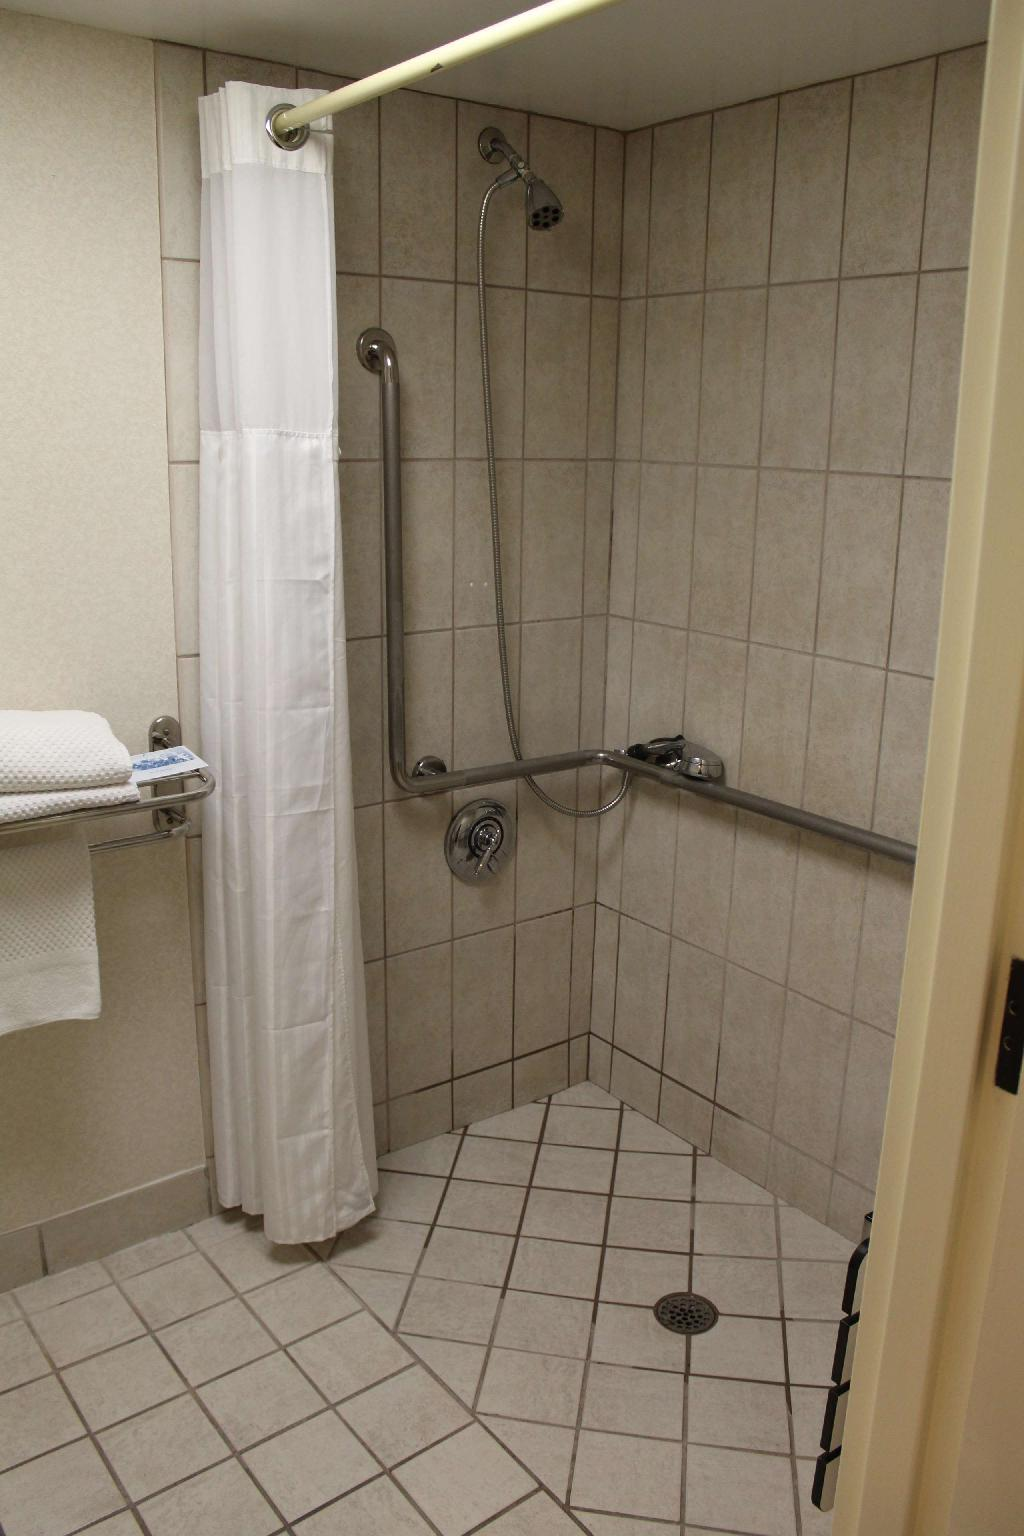 1 King Mobility Hearing Accessible Roll In Shower